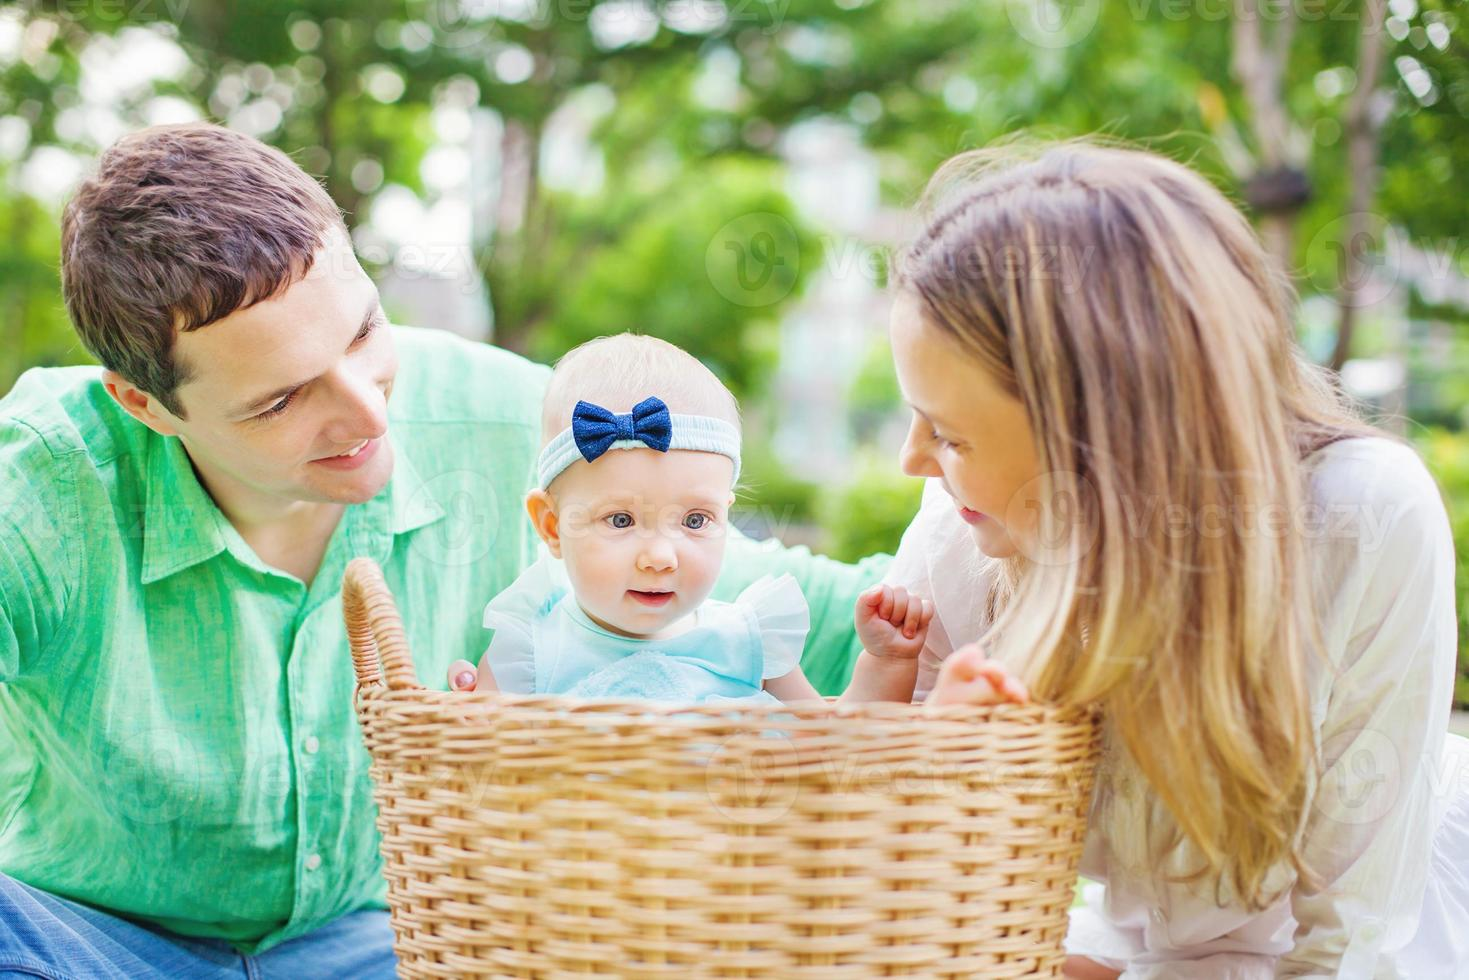 Happy couple with their baby in a laundry basket photo